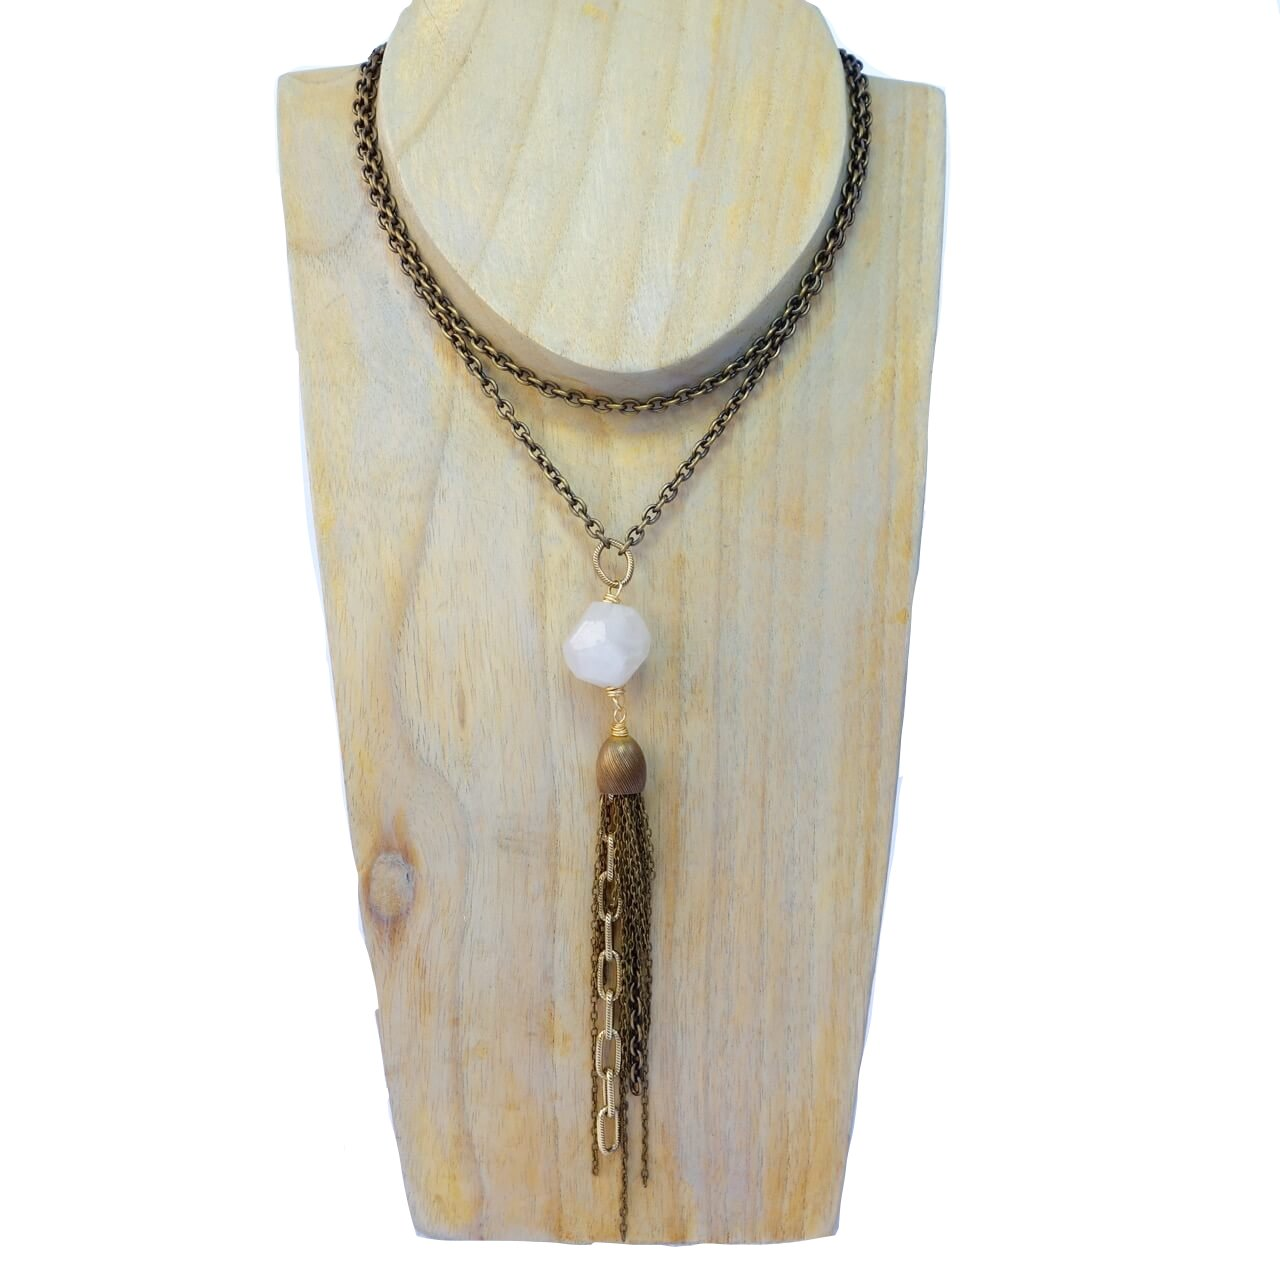 Bella Vita Jewelry Kaya White Quartz Necklace